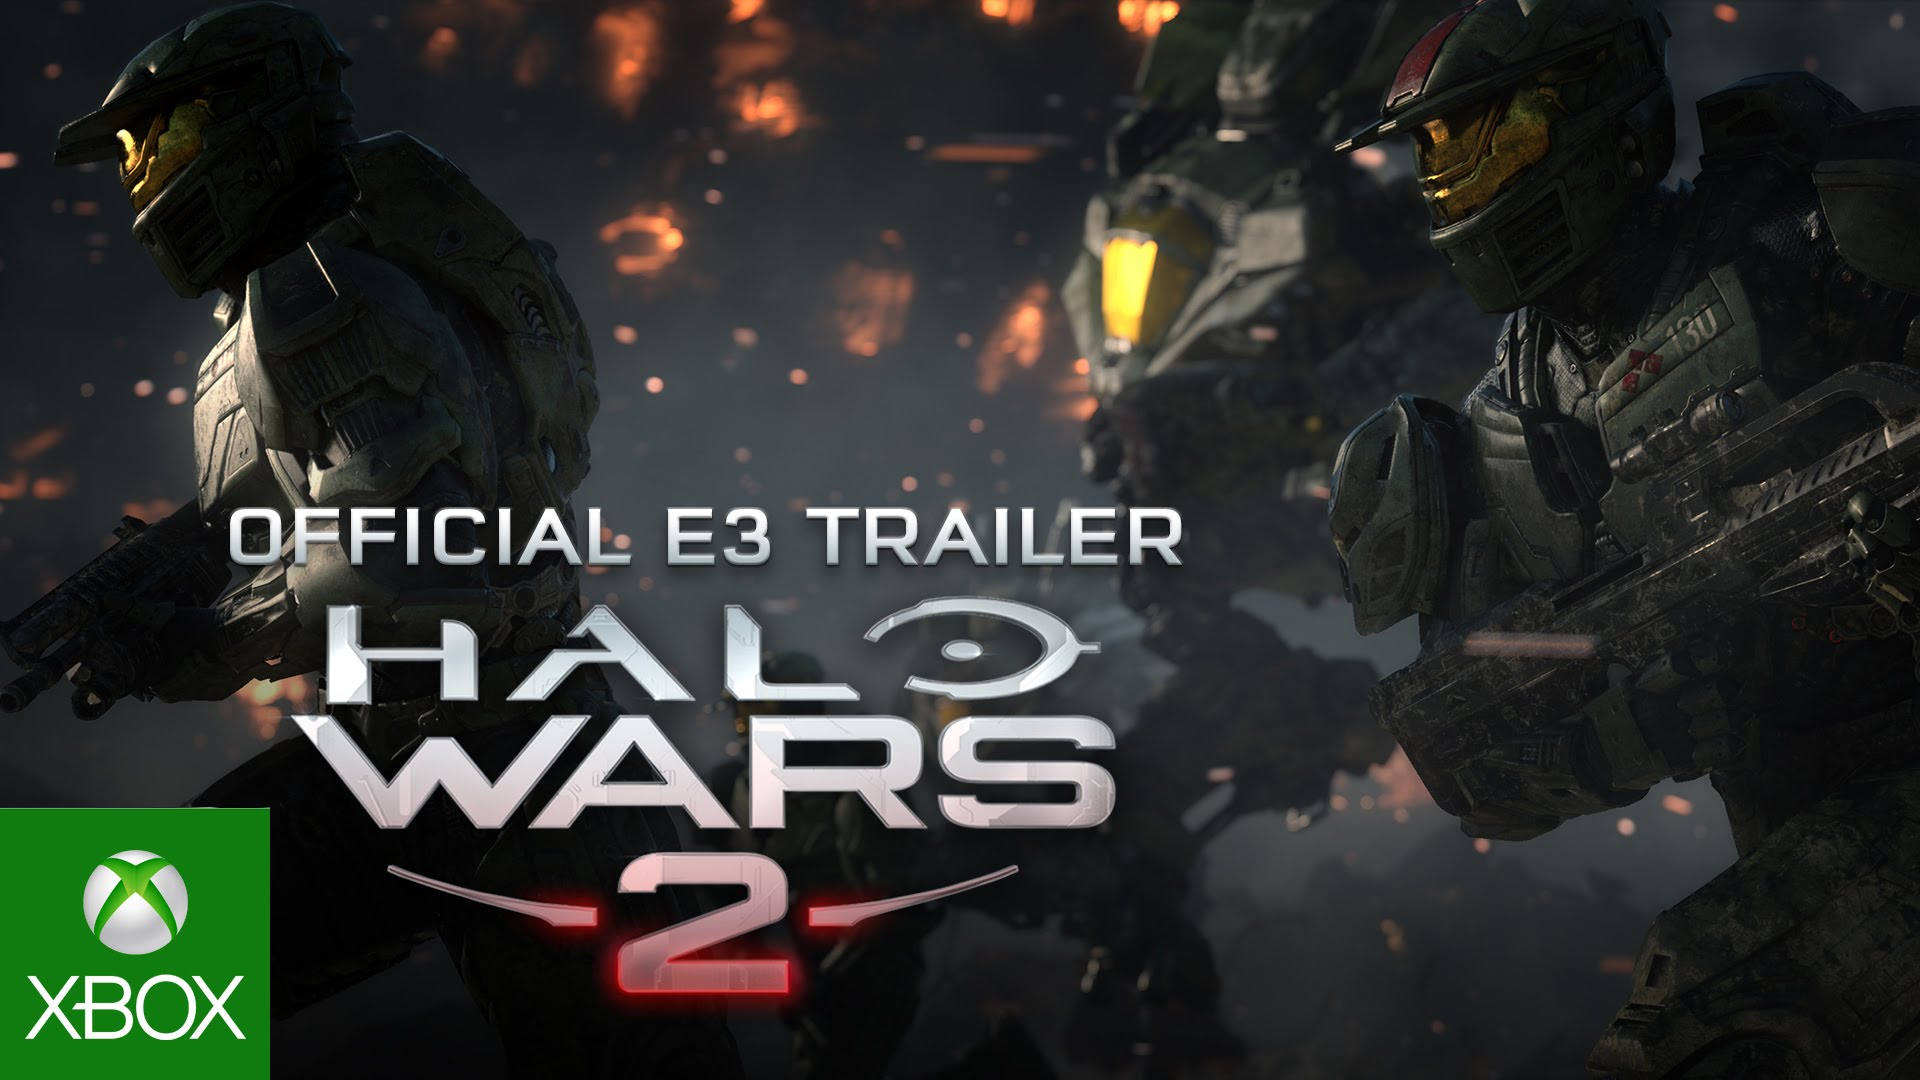 Halo Wars 2 Official E3 Trailer